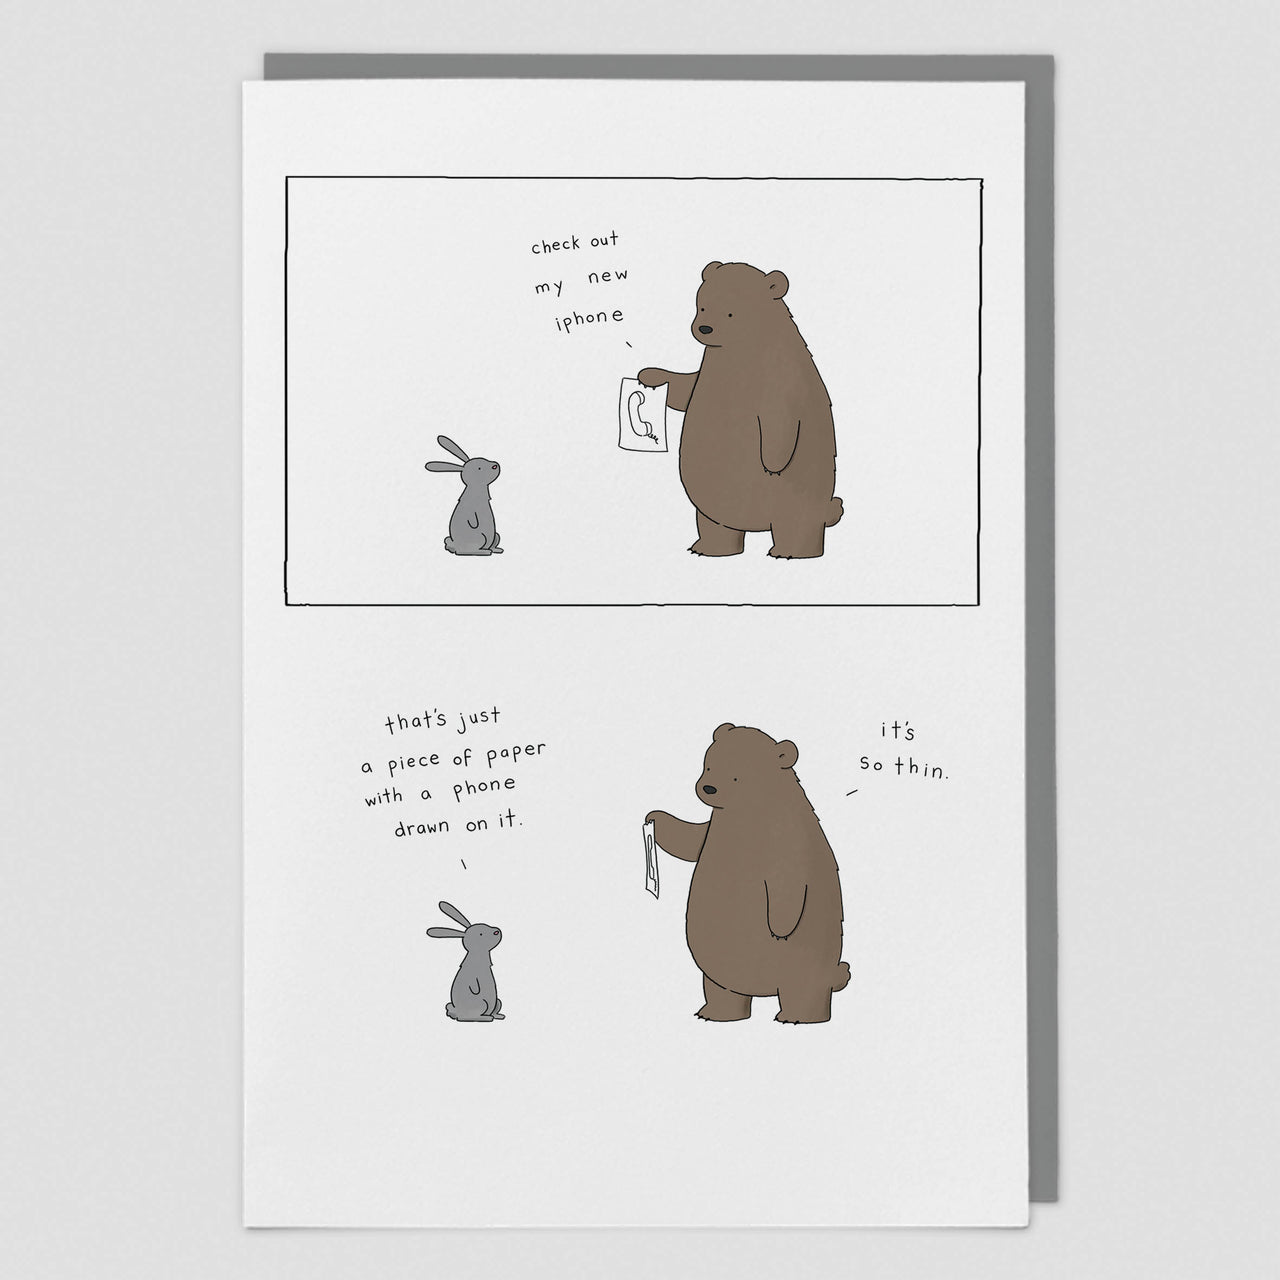 Liz Climo - New Iphone